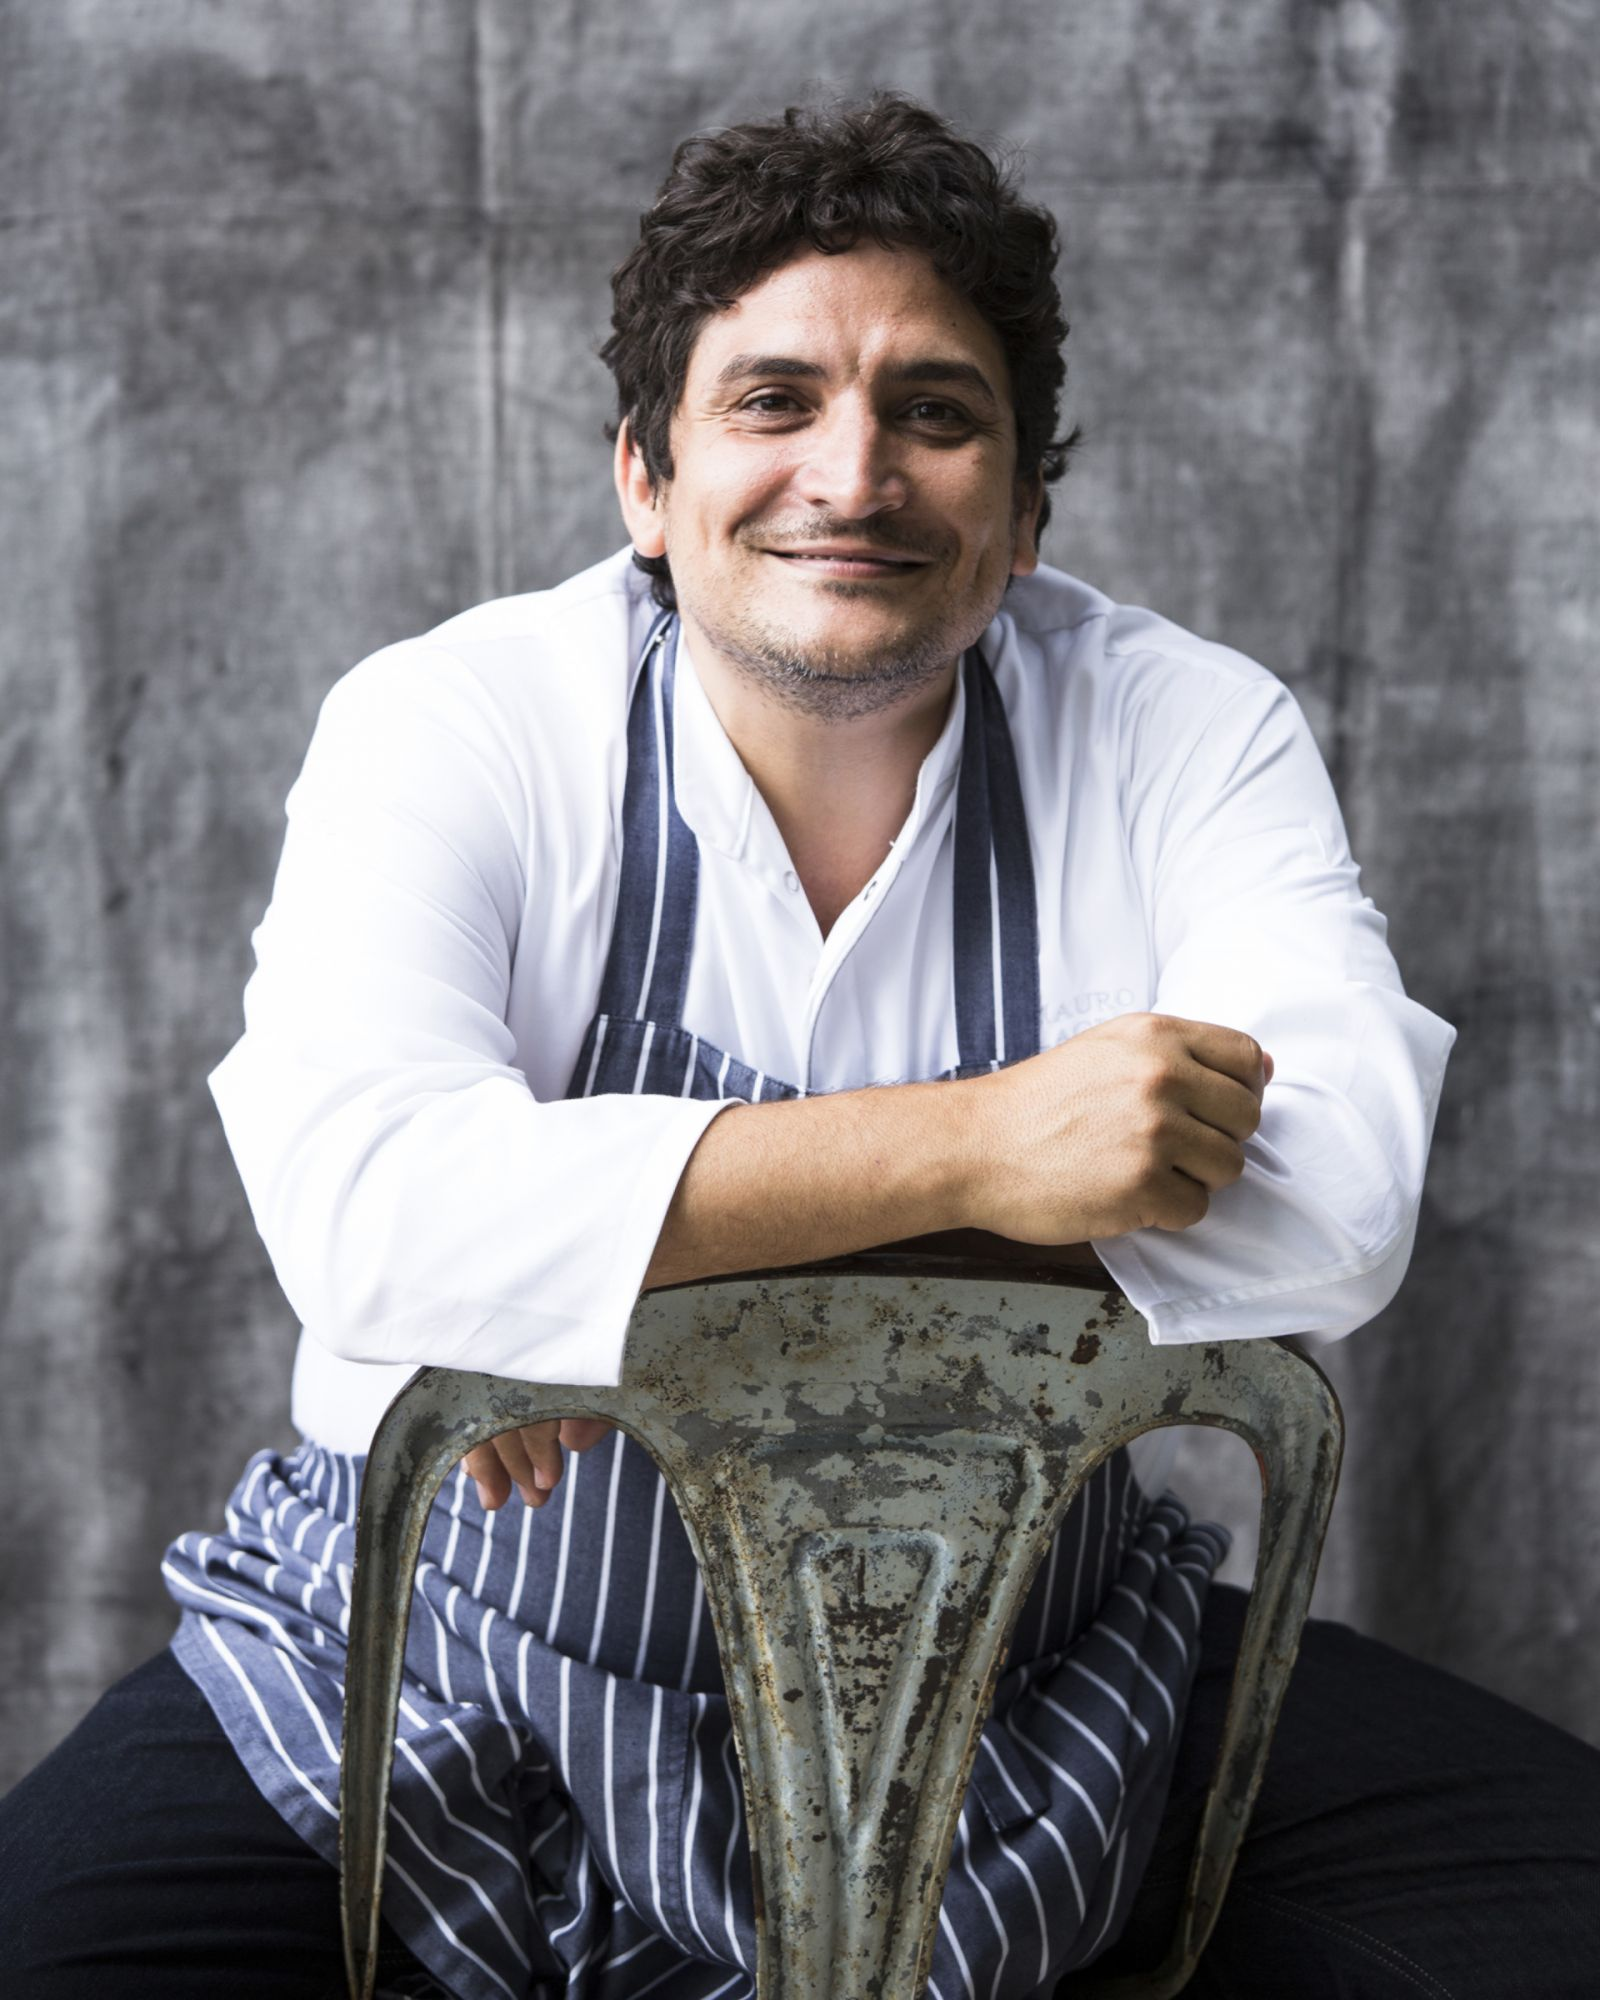 Mirazur Restaurant's Mauro Colagreco Is The World's Most Influential Chef, According To His Peers